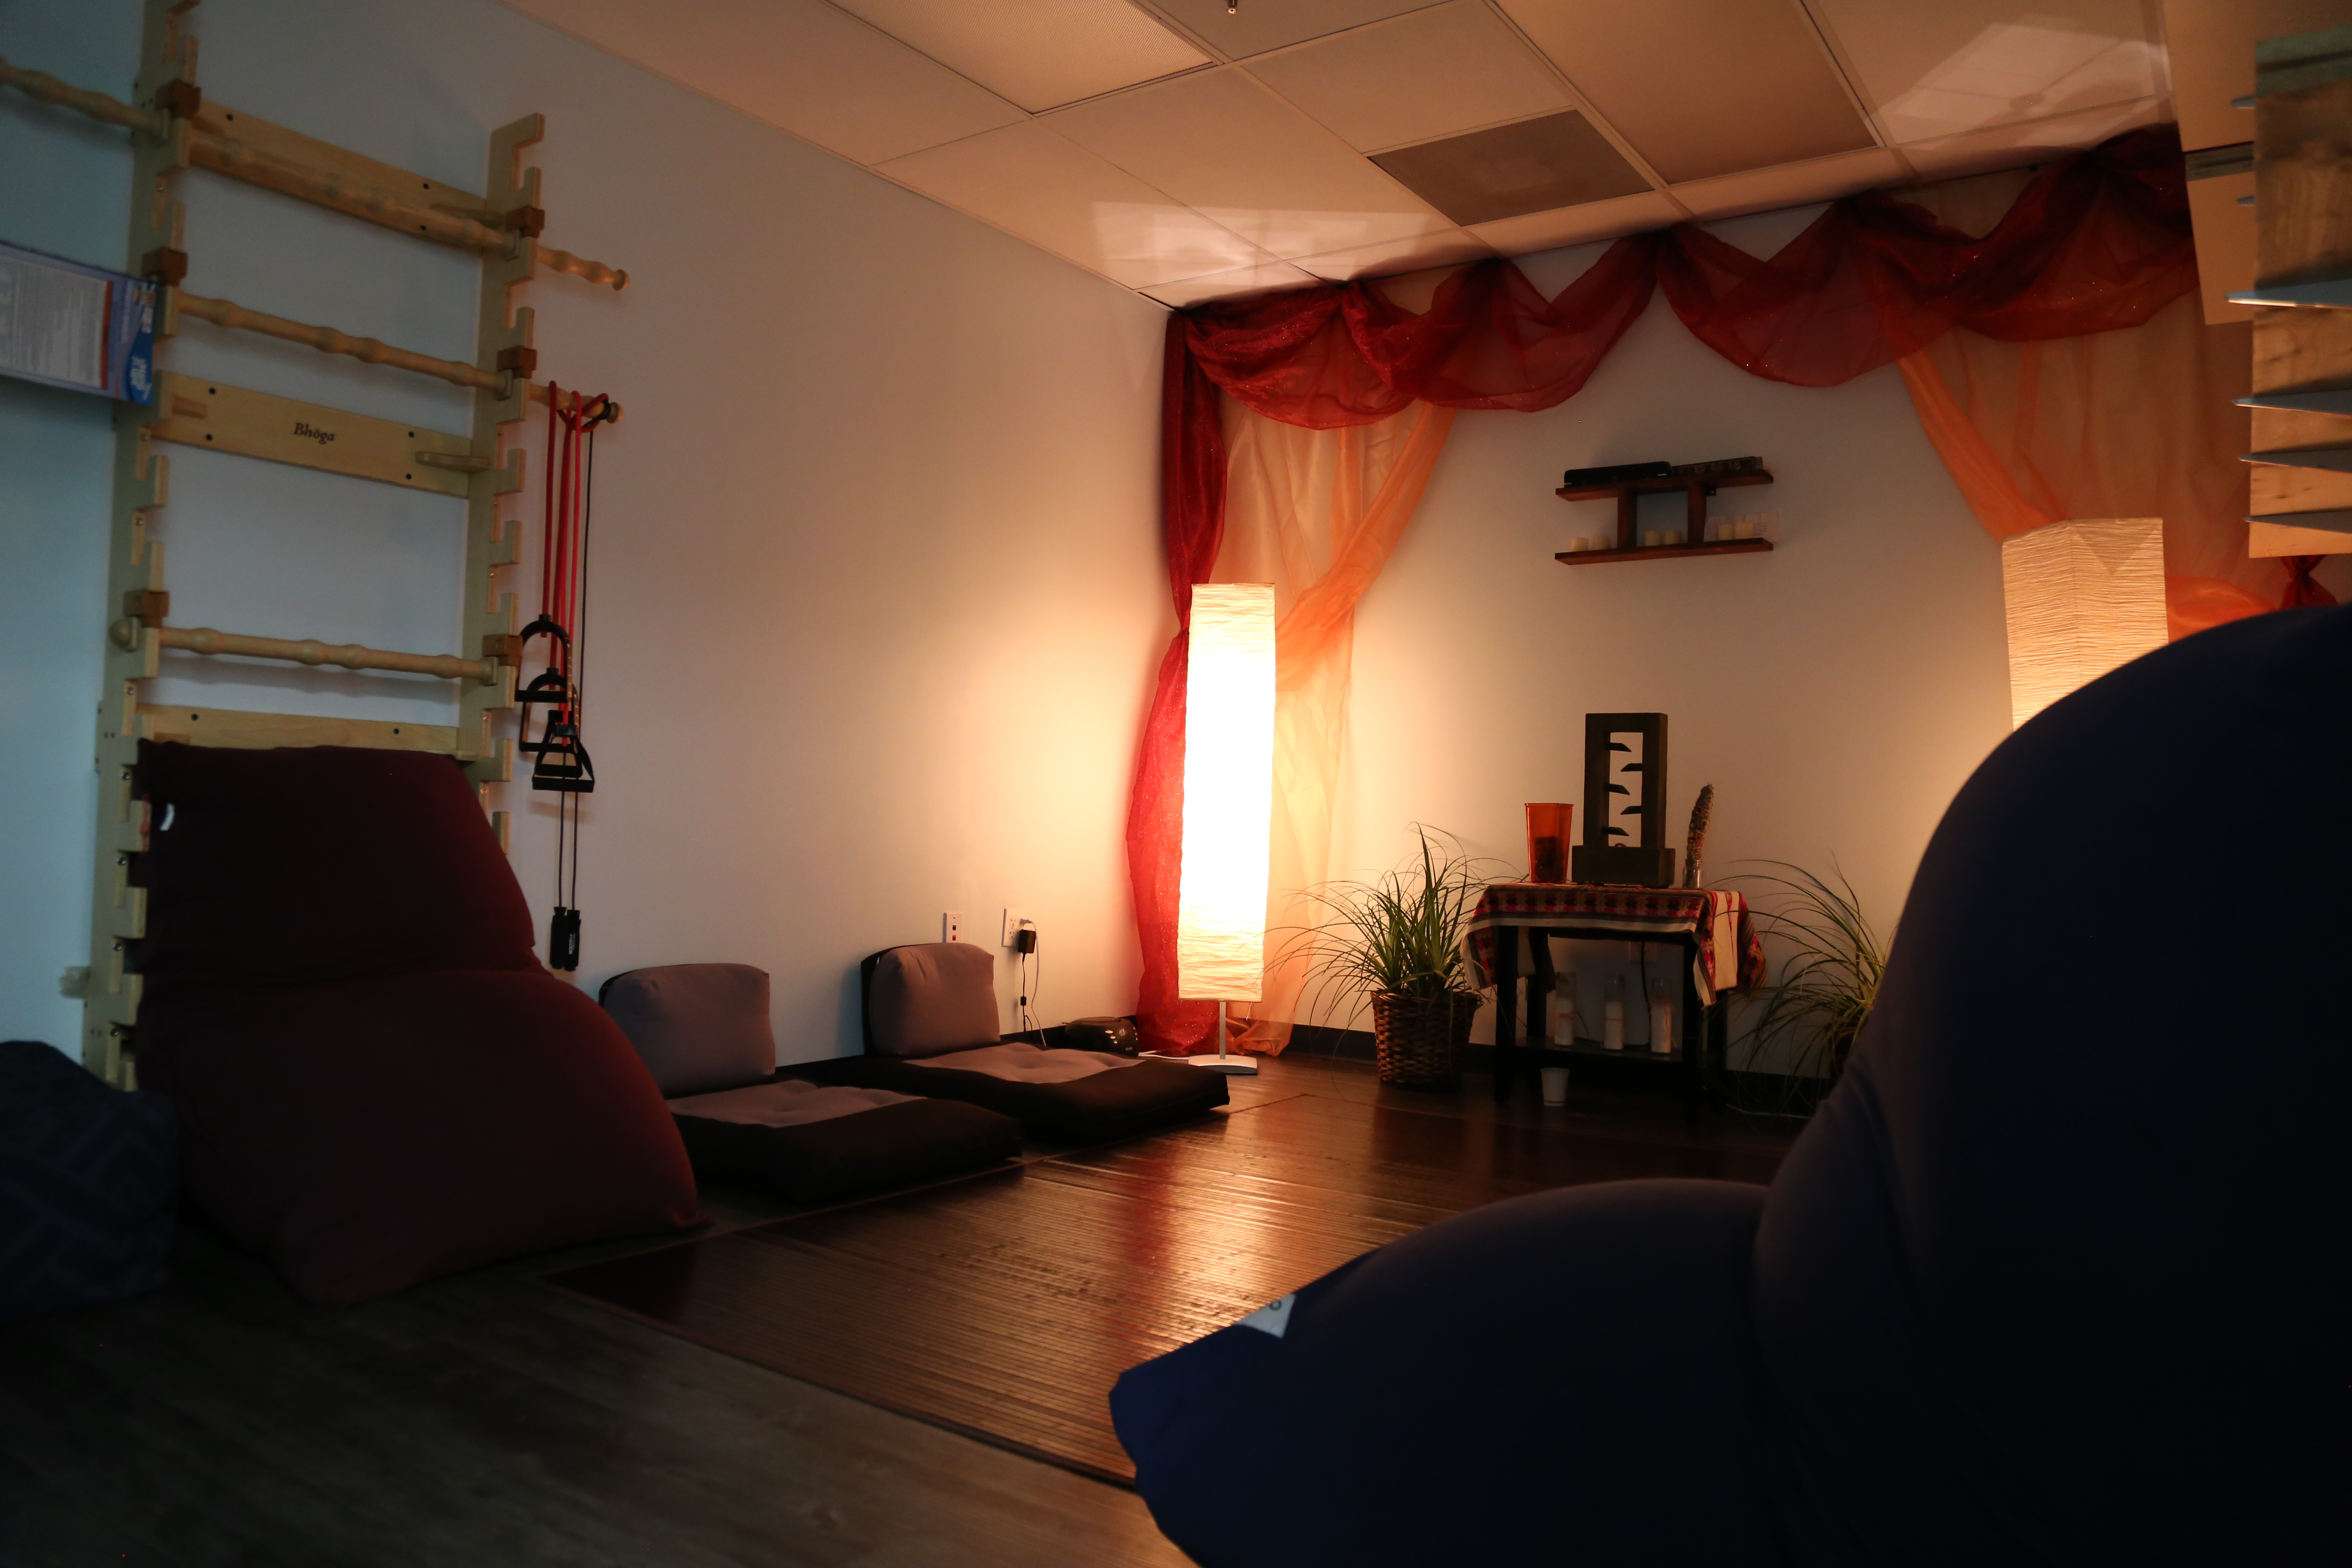 Miami Meeting Space Wellness Meditation Room